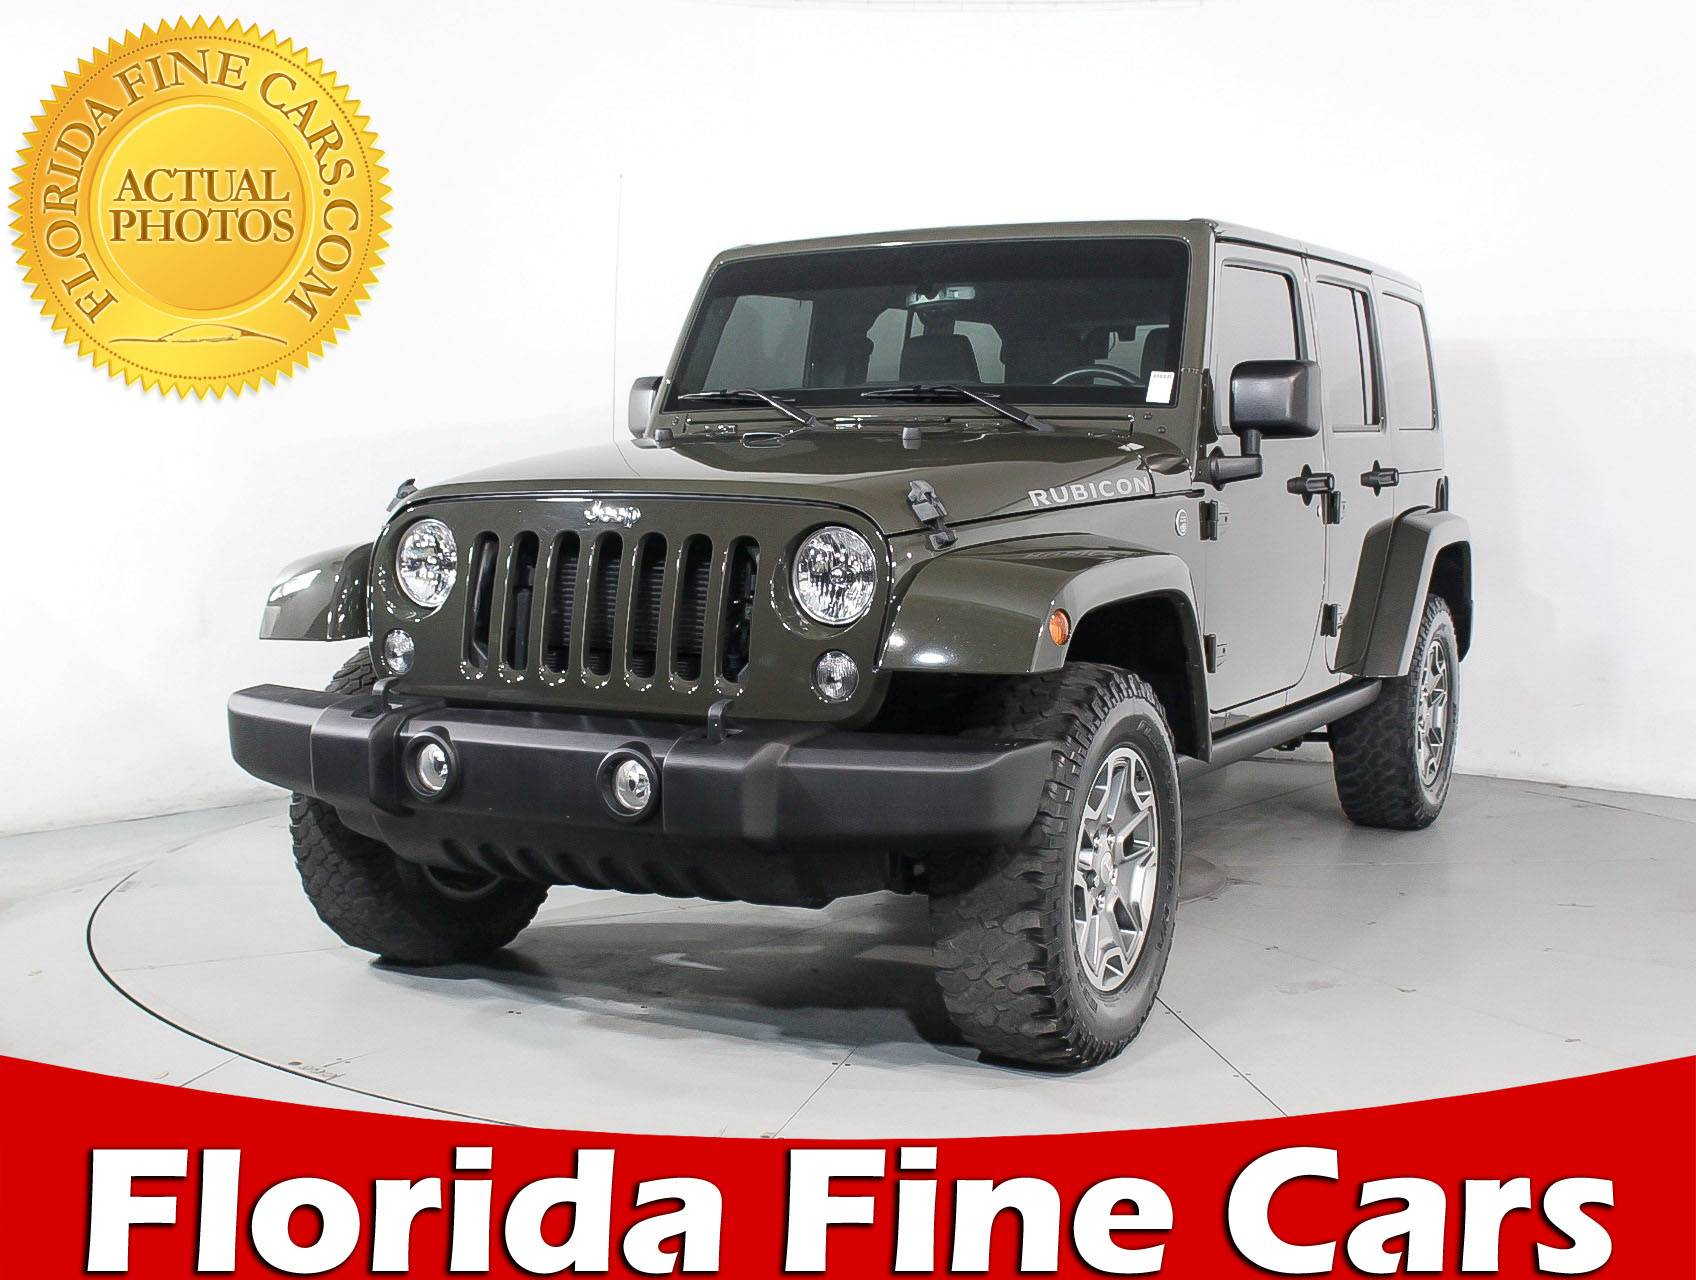 Used 2015 JEEP WRANGLER UNLIMITED RUBICON SUV For Sale In MIAMI, FL | 91367  | Florida Fine Cars